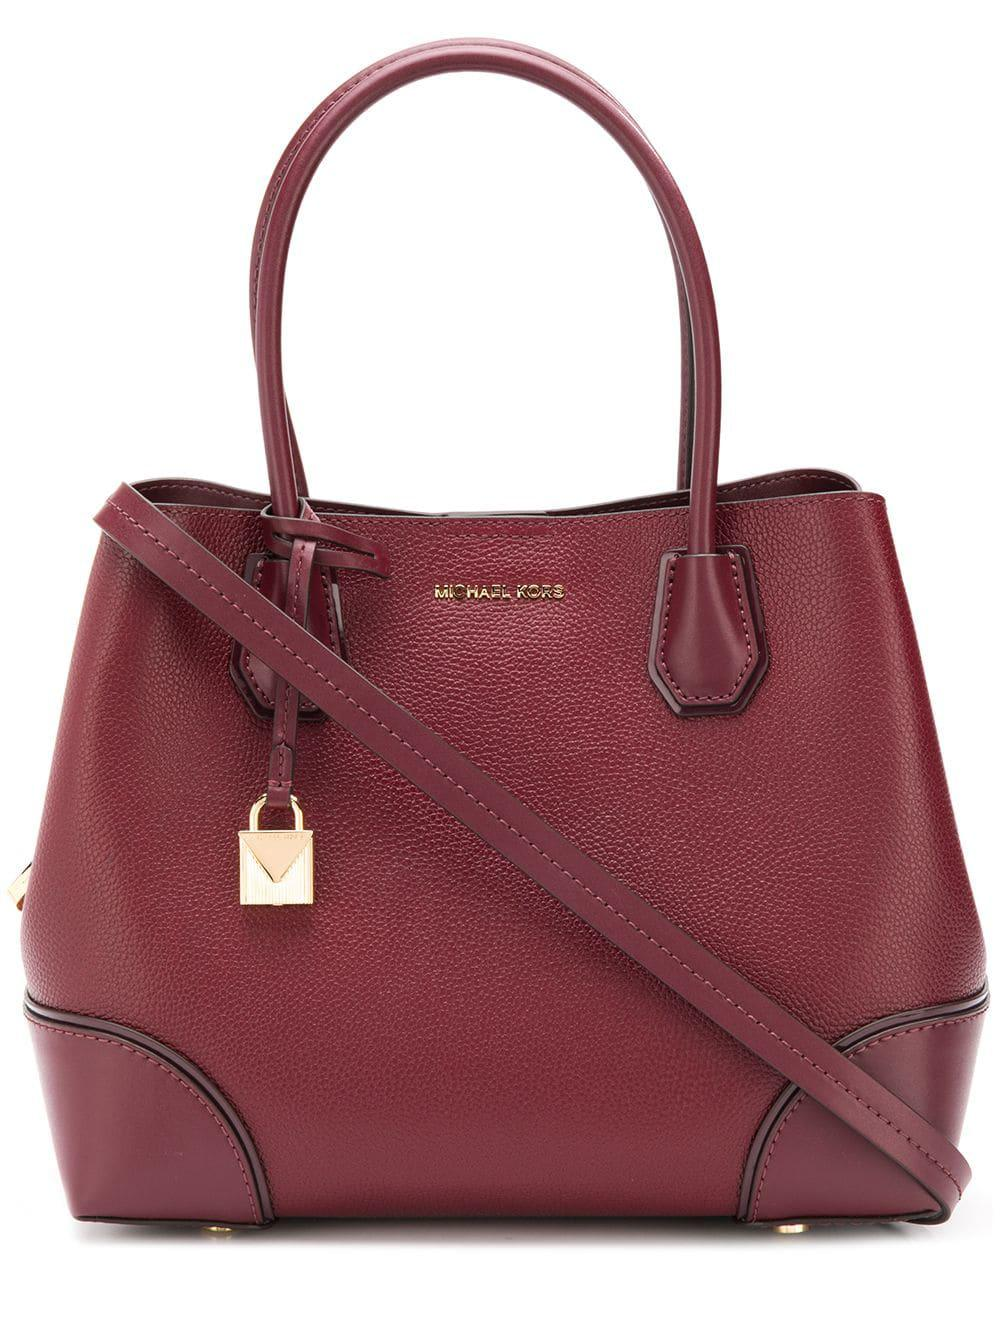 b76782ee22e49 Lyst - MICHAEL Michael Kors Mercer Gallery Leather Tote Bag in Red